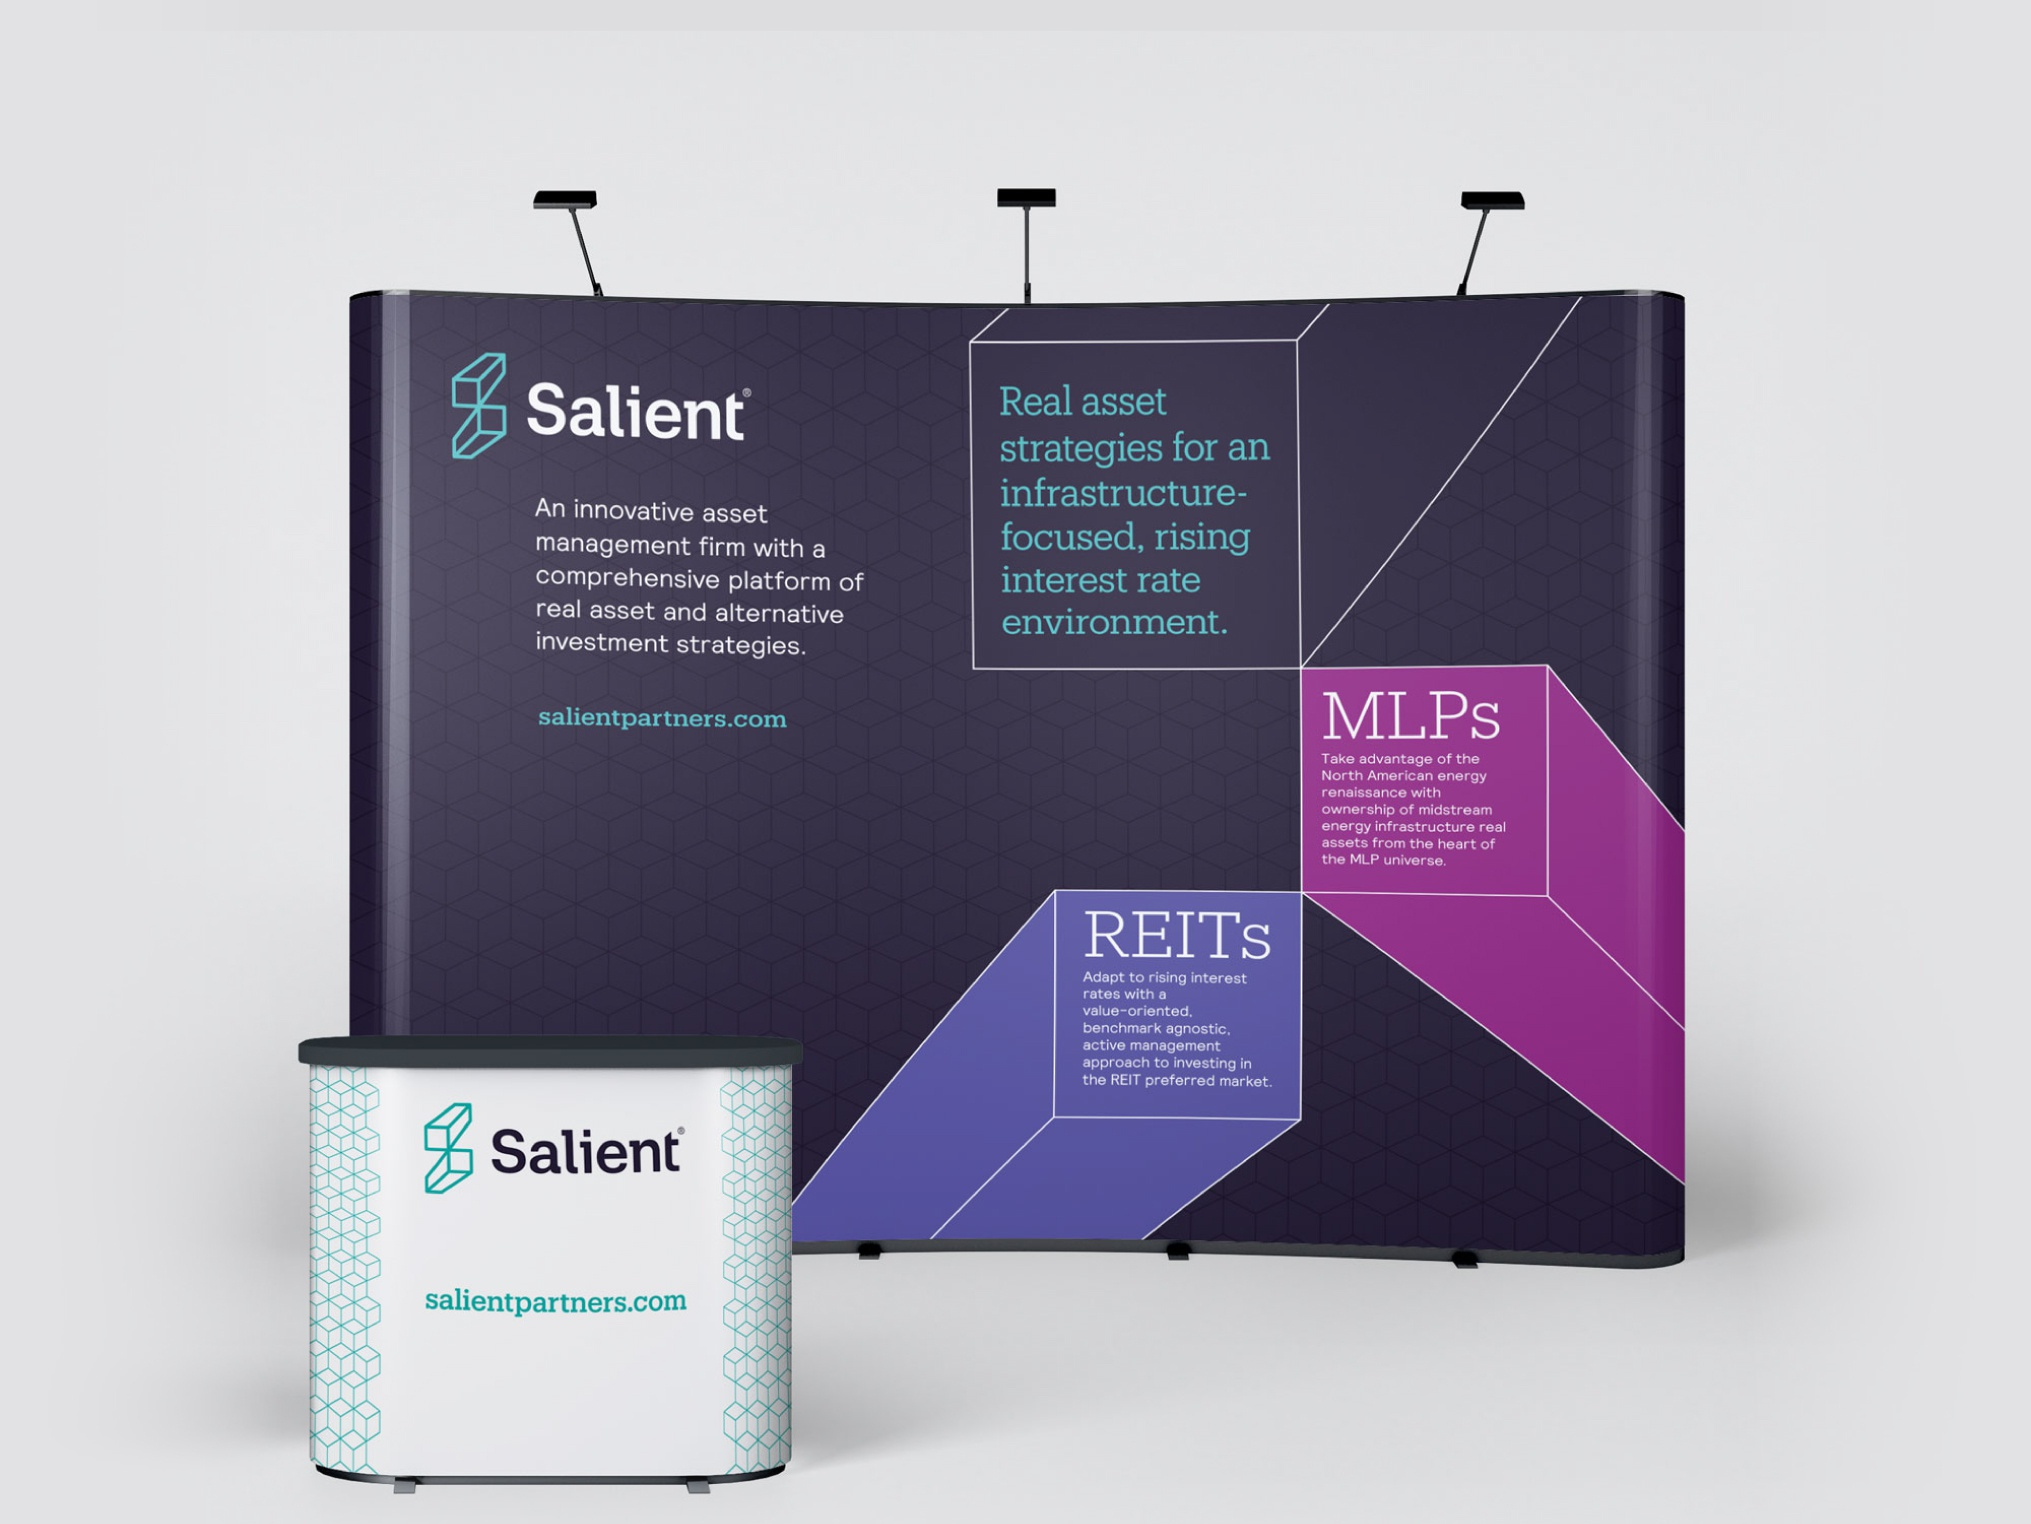 Salient booth event v11